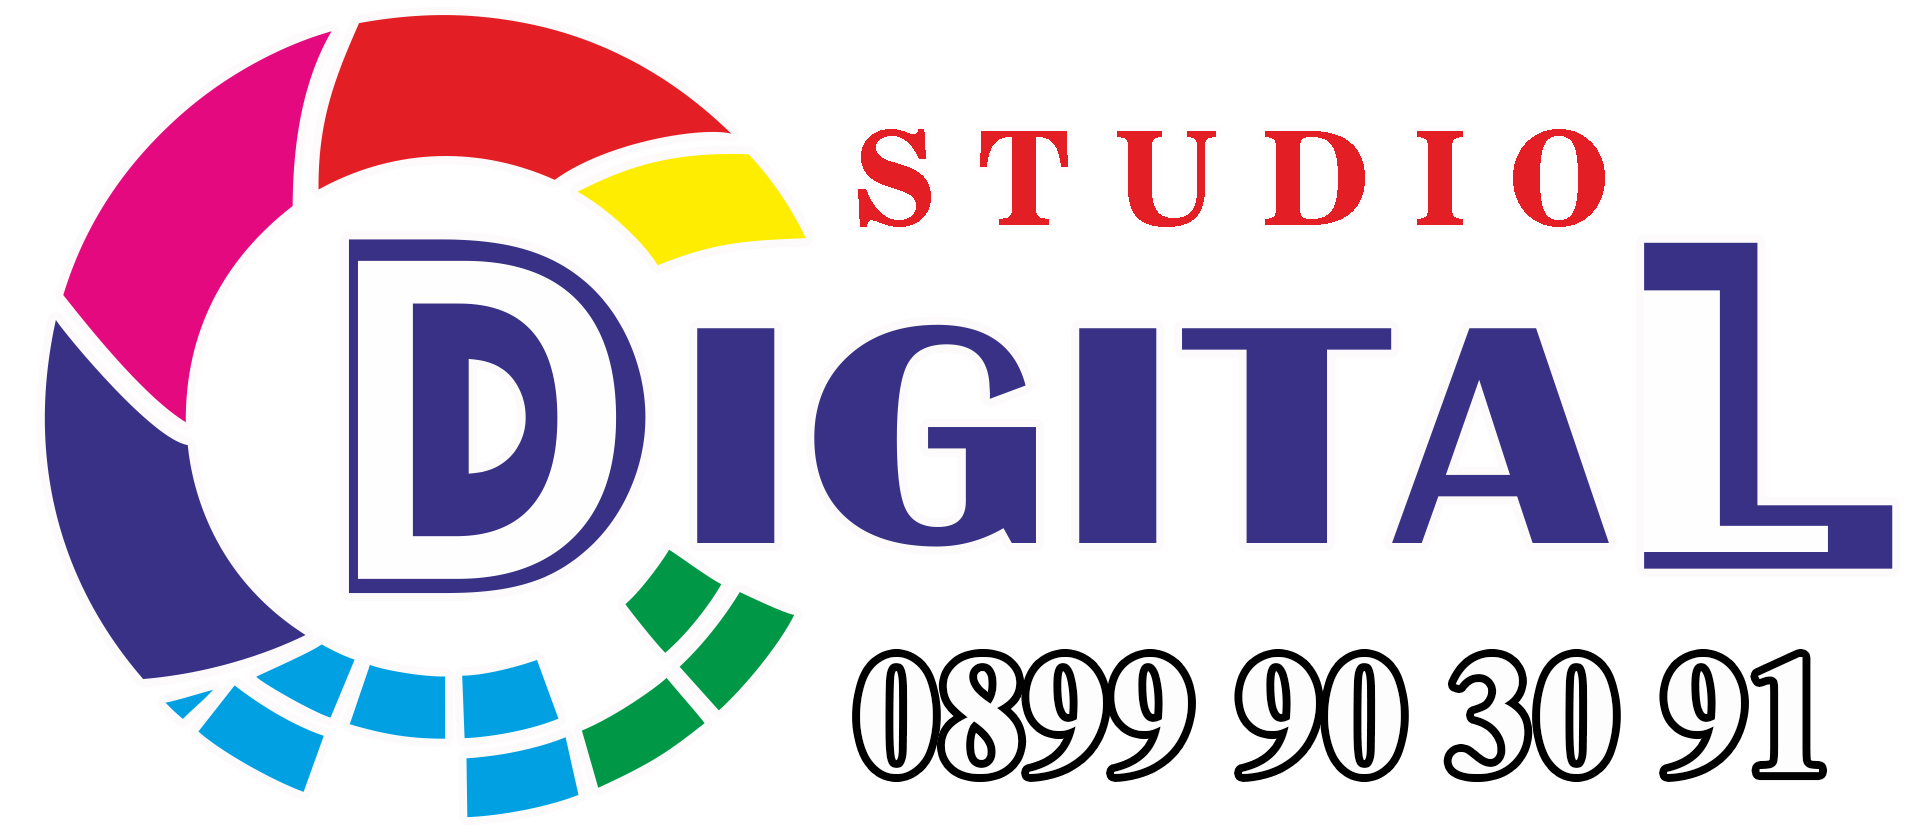 Digitalstudio